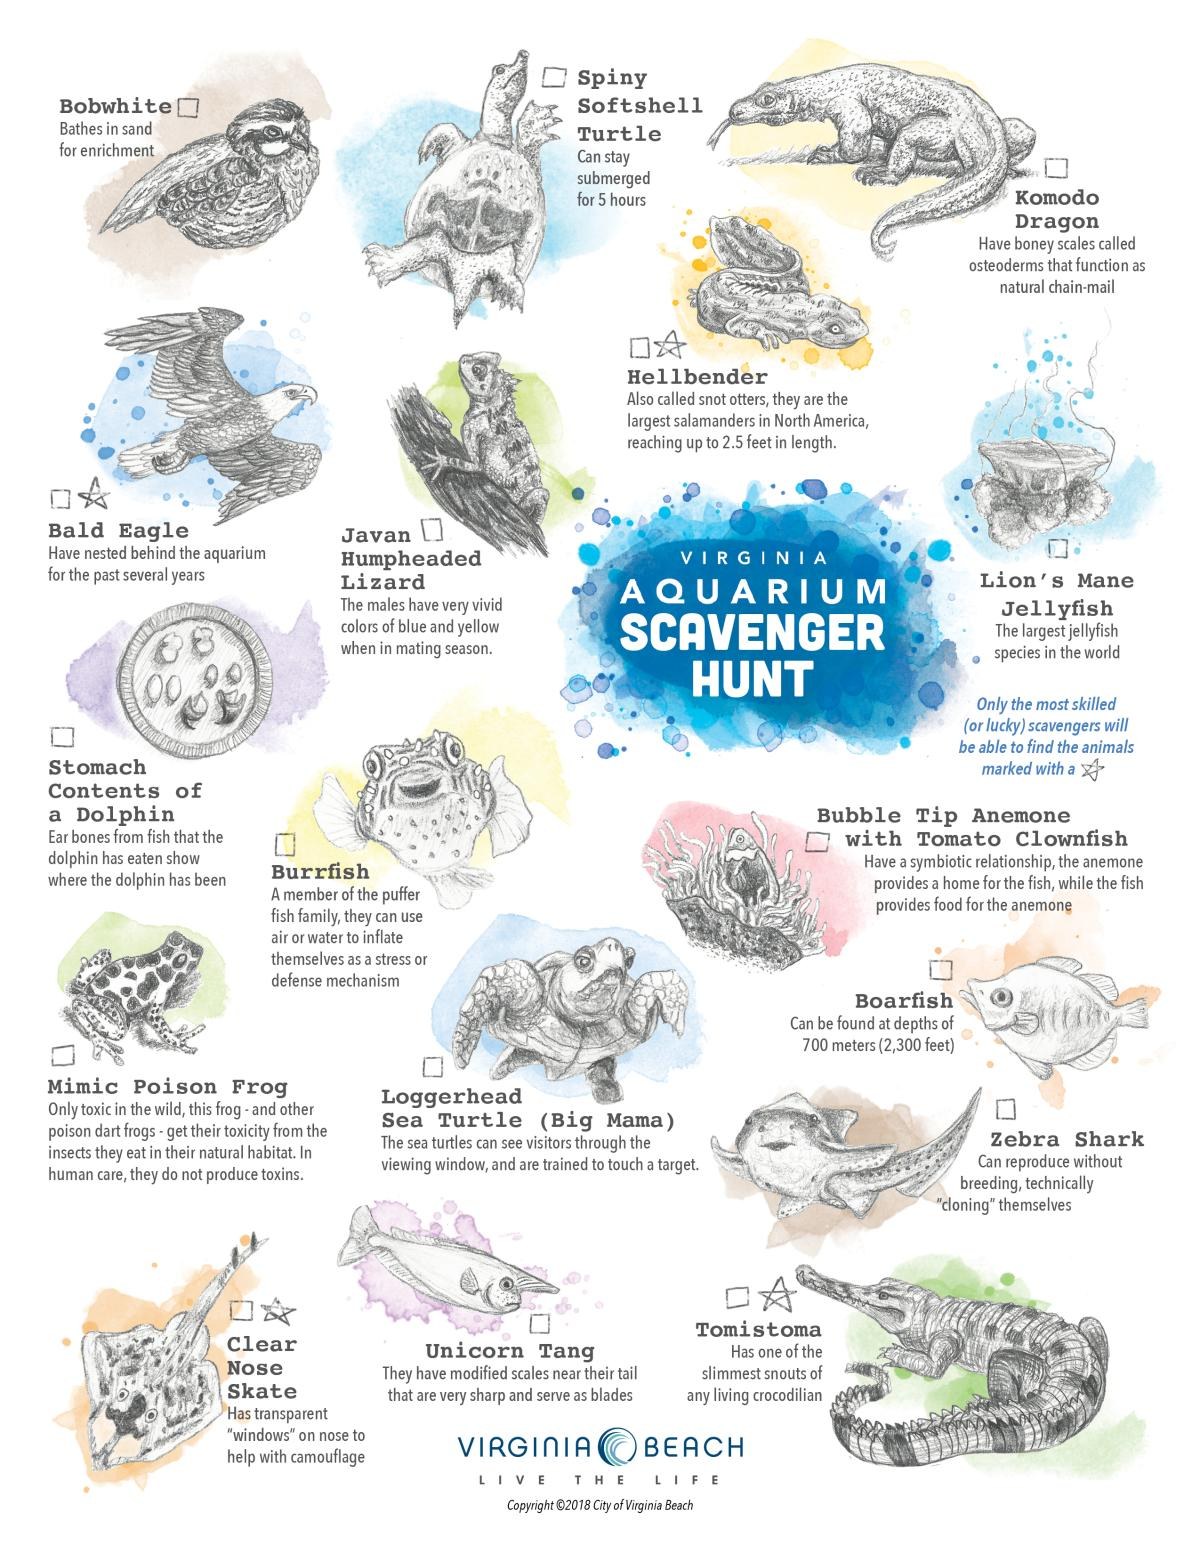 Virginia Aquarium Scavenger Hunt